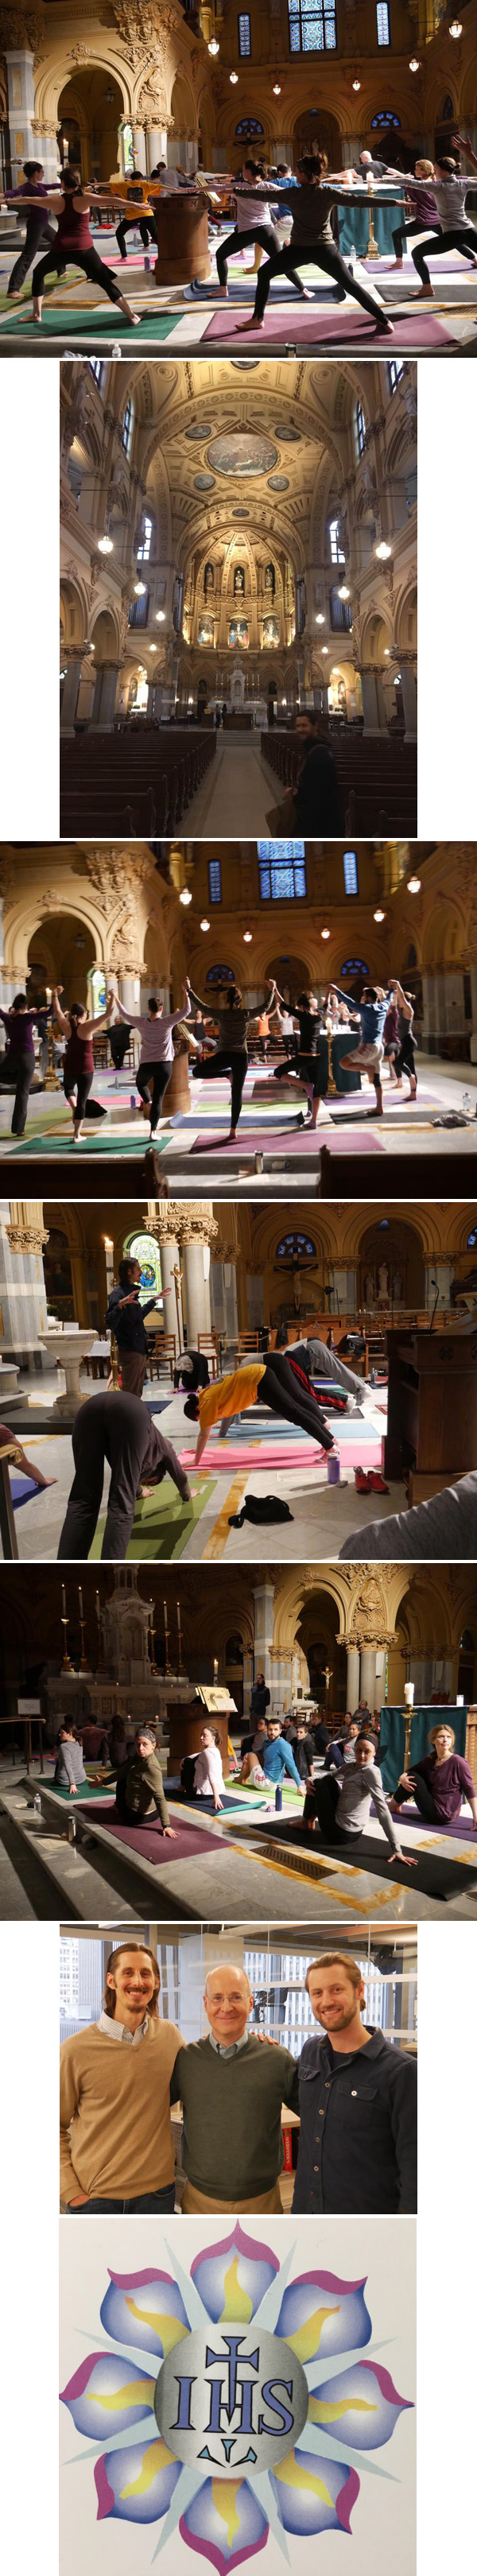 Photo compilation of Yoga in St. Francis Xavier Church